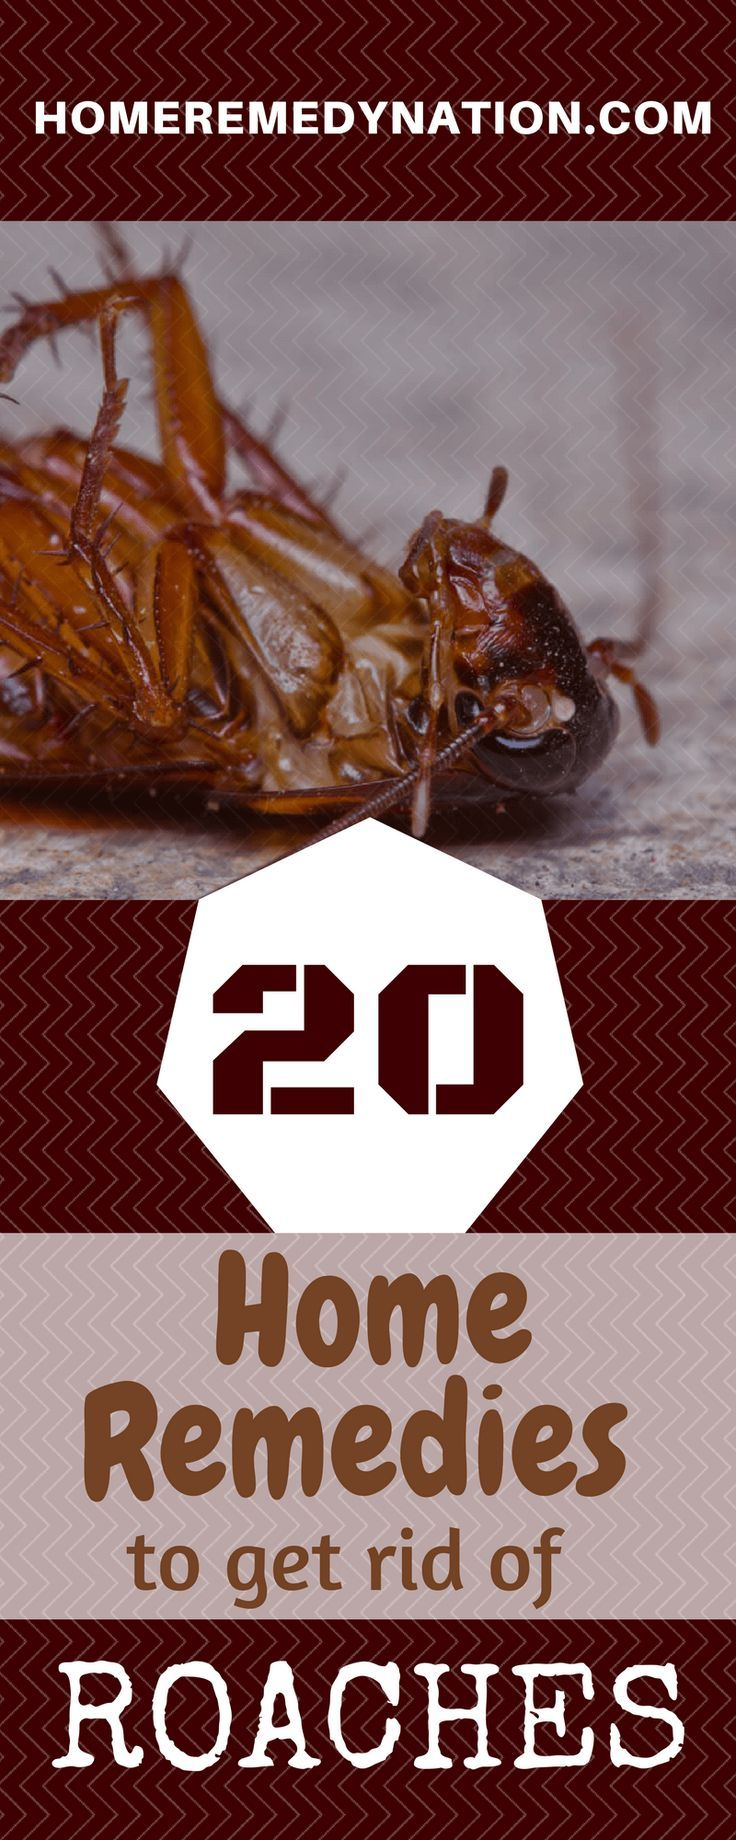 20 simple home remedies to get rid of roaches home